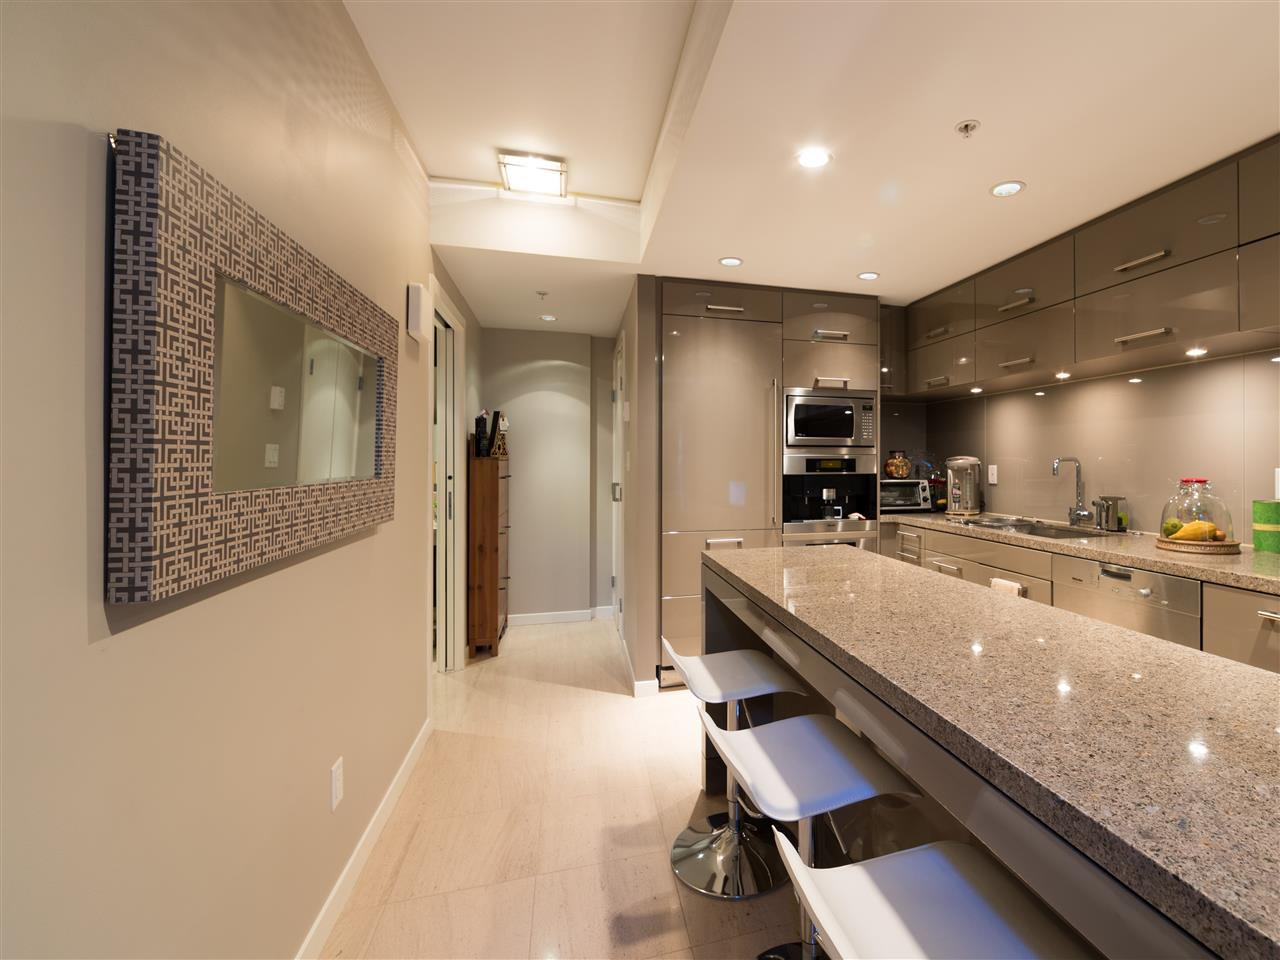 Condo Apartment at TH8 5991 WALTER GAGE ROAD, Unit TH8, Vancouver West, British Columbia. Image 7